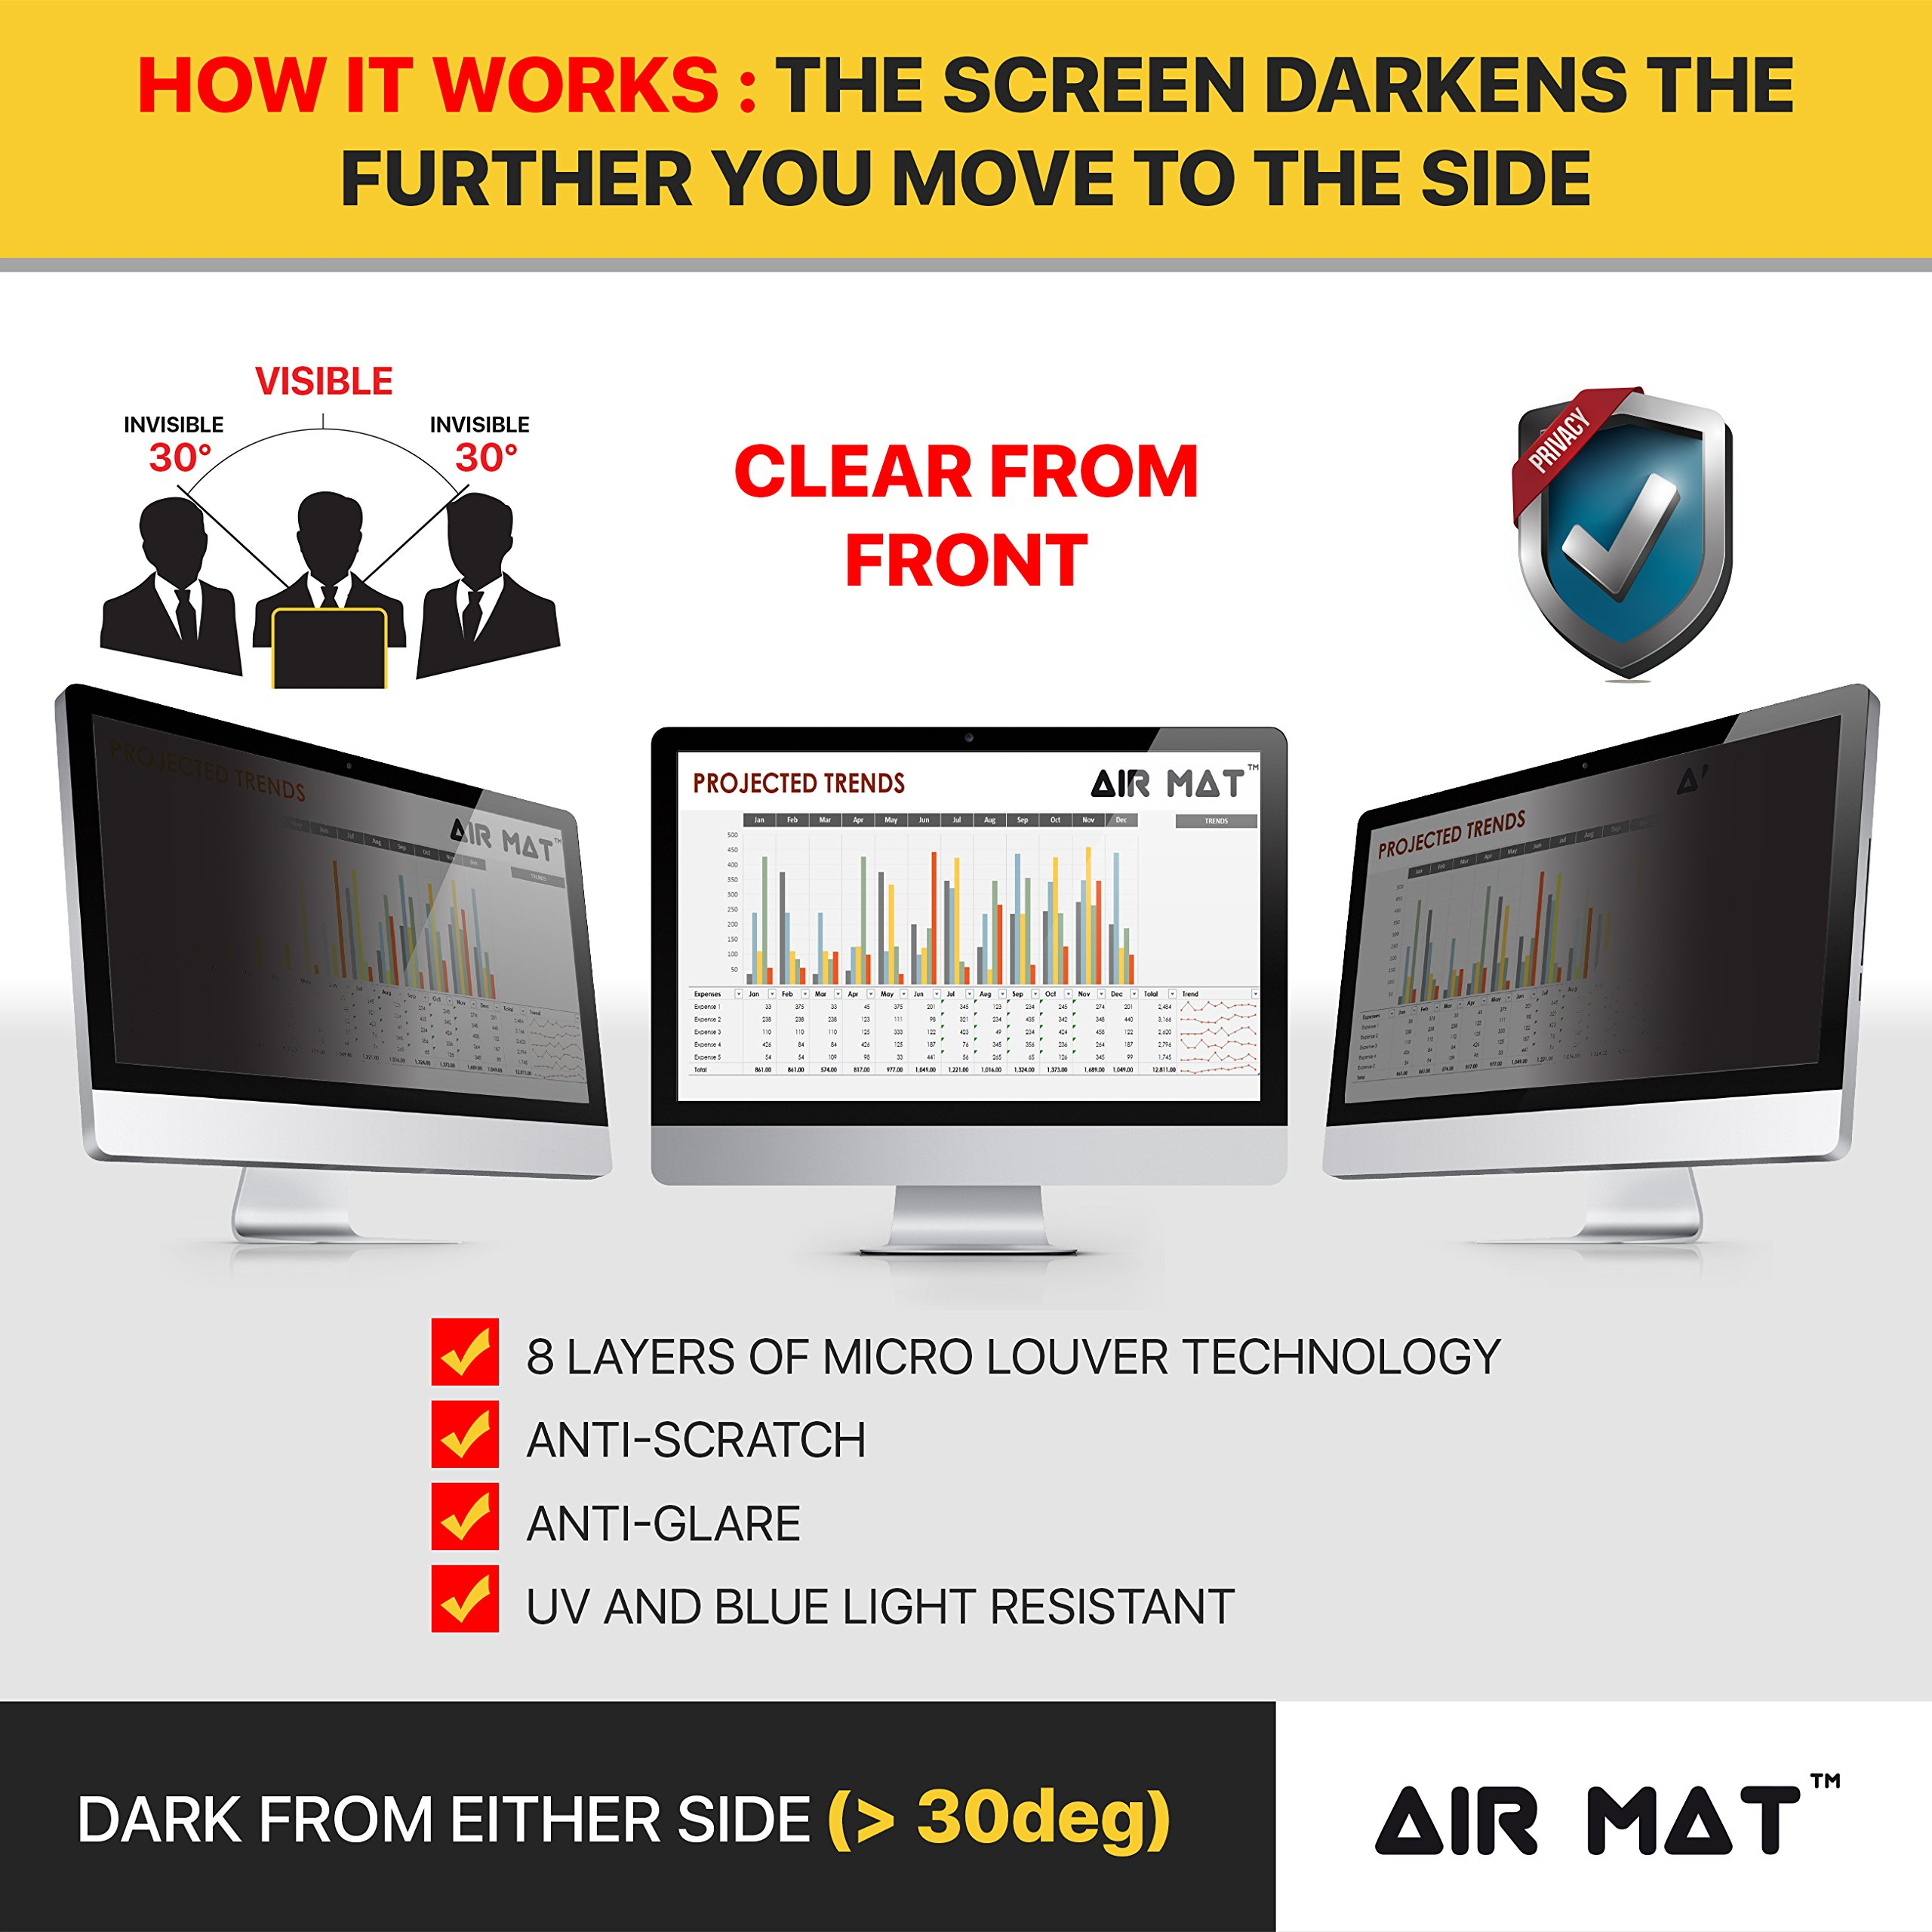 24 Inch Privacy Screen Filter for Widescreen Computer Monitor/LCD (16:10 Aspect Ratio). Original Anti Glare Protector Film for data confidentiality - (24'' W10) - MEASURE SCREEN CAREFULLY by Air Mat (Image #2)